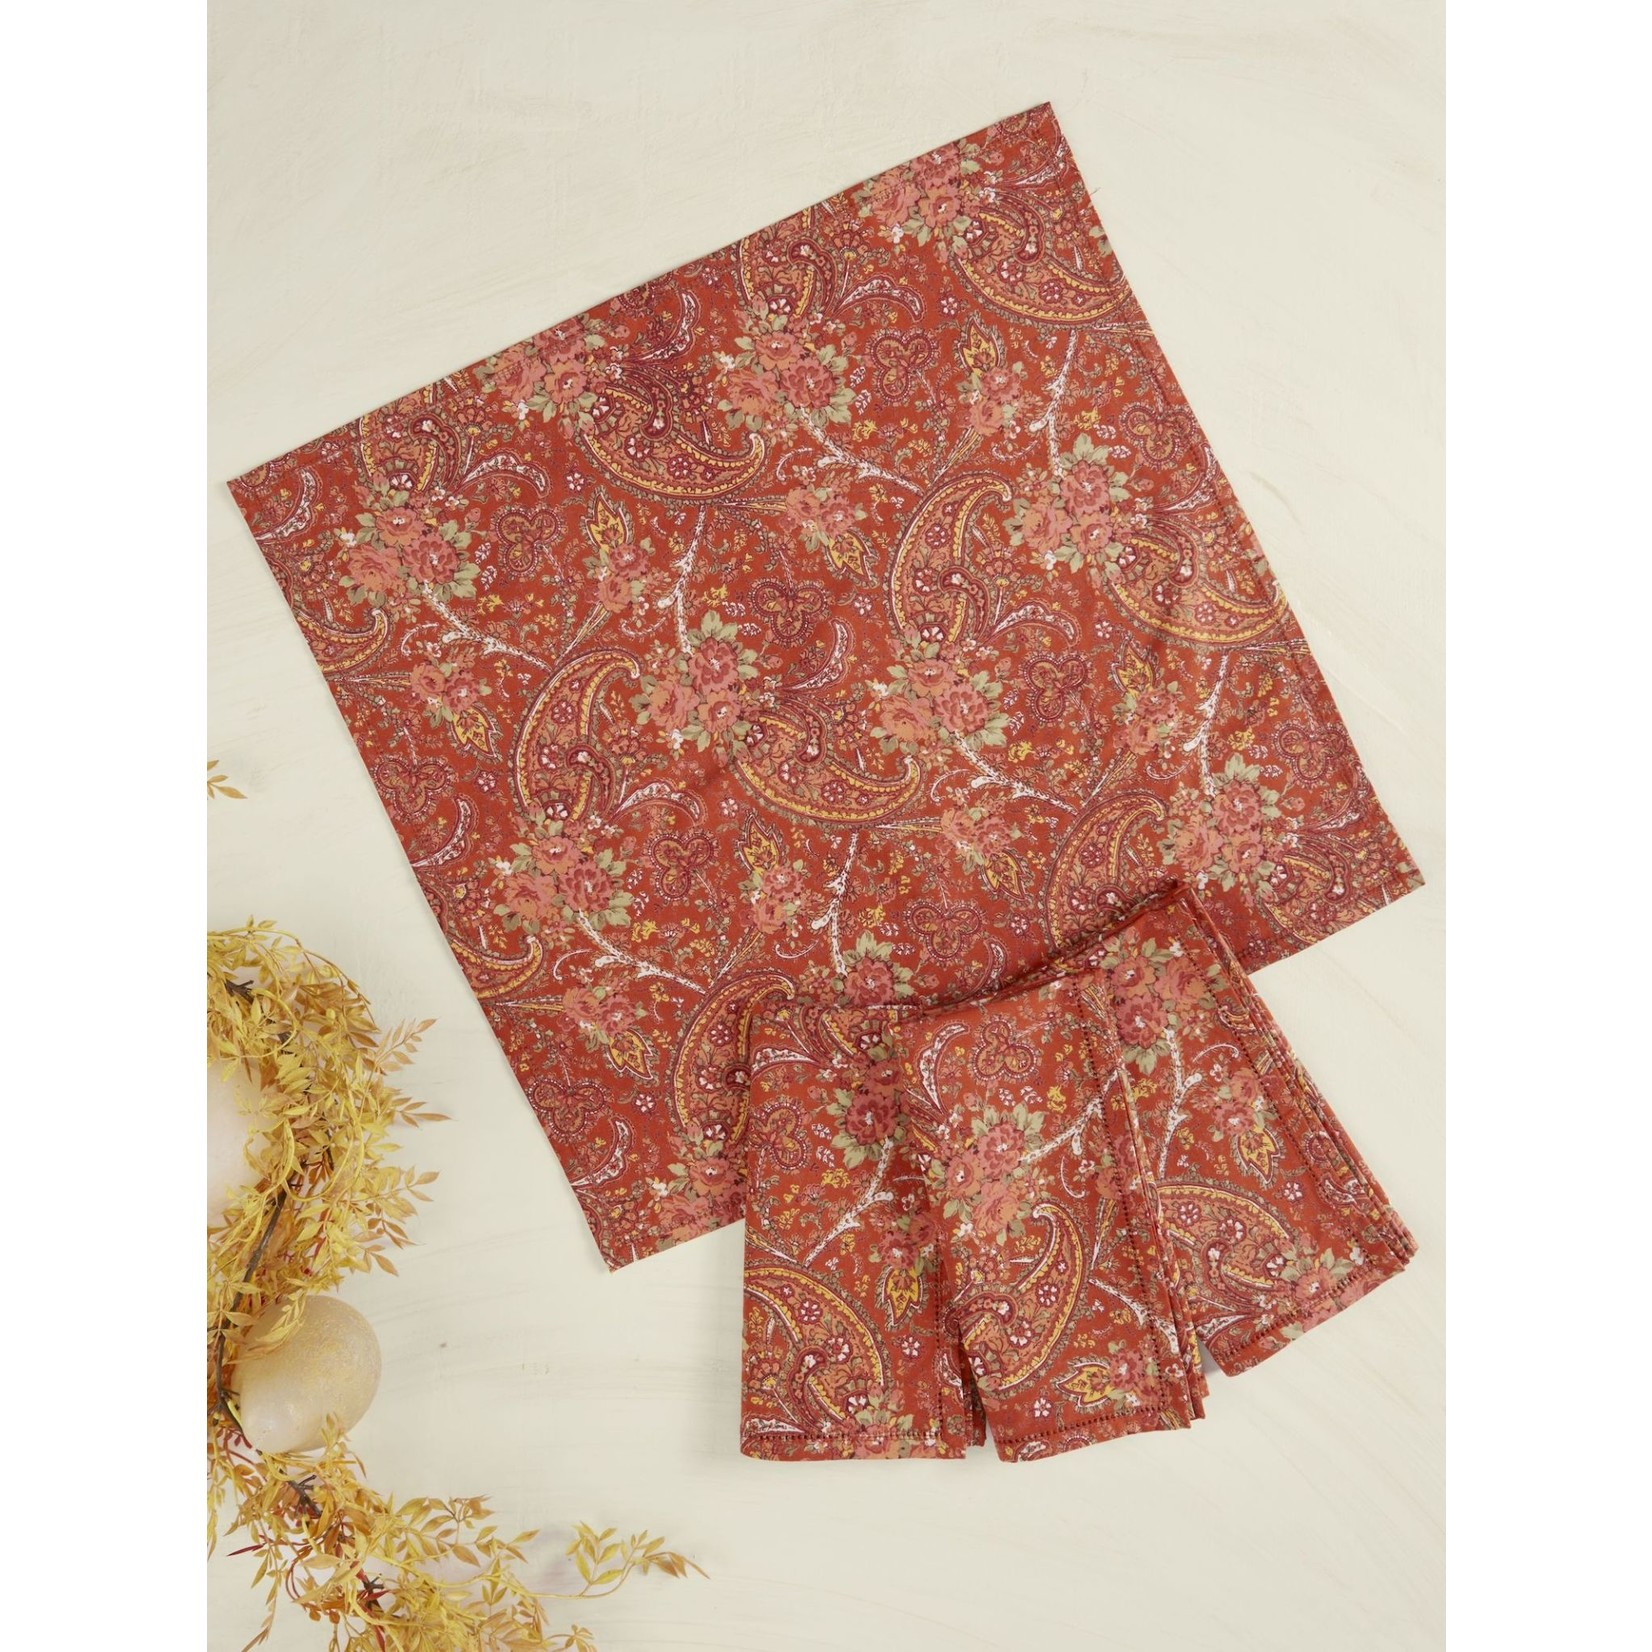 Garden Paisley Napkins Set of 4, Rust